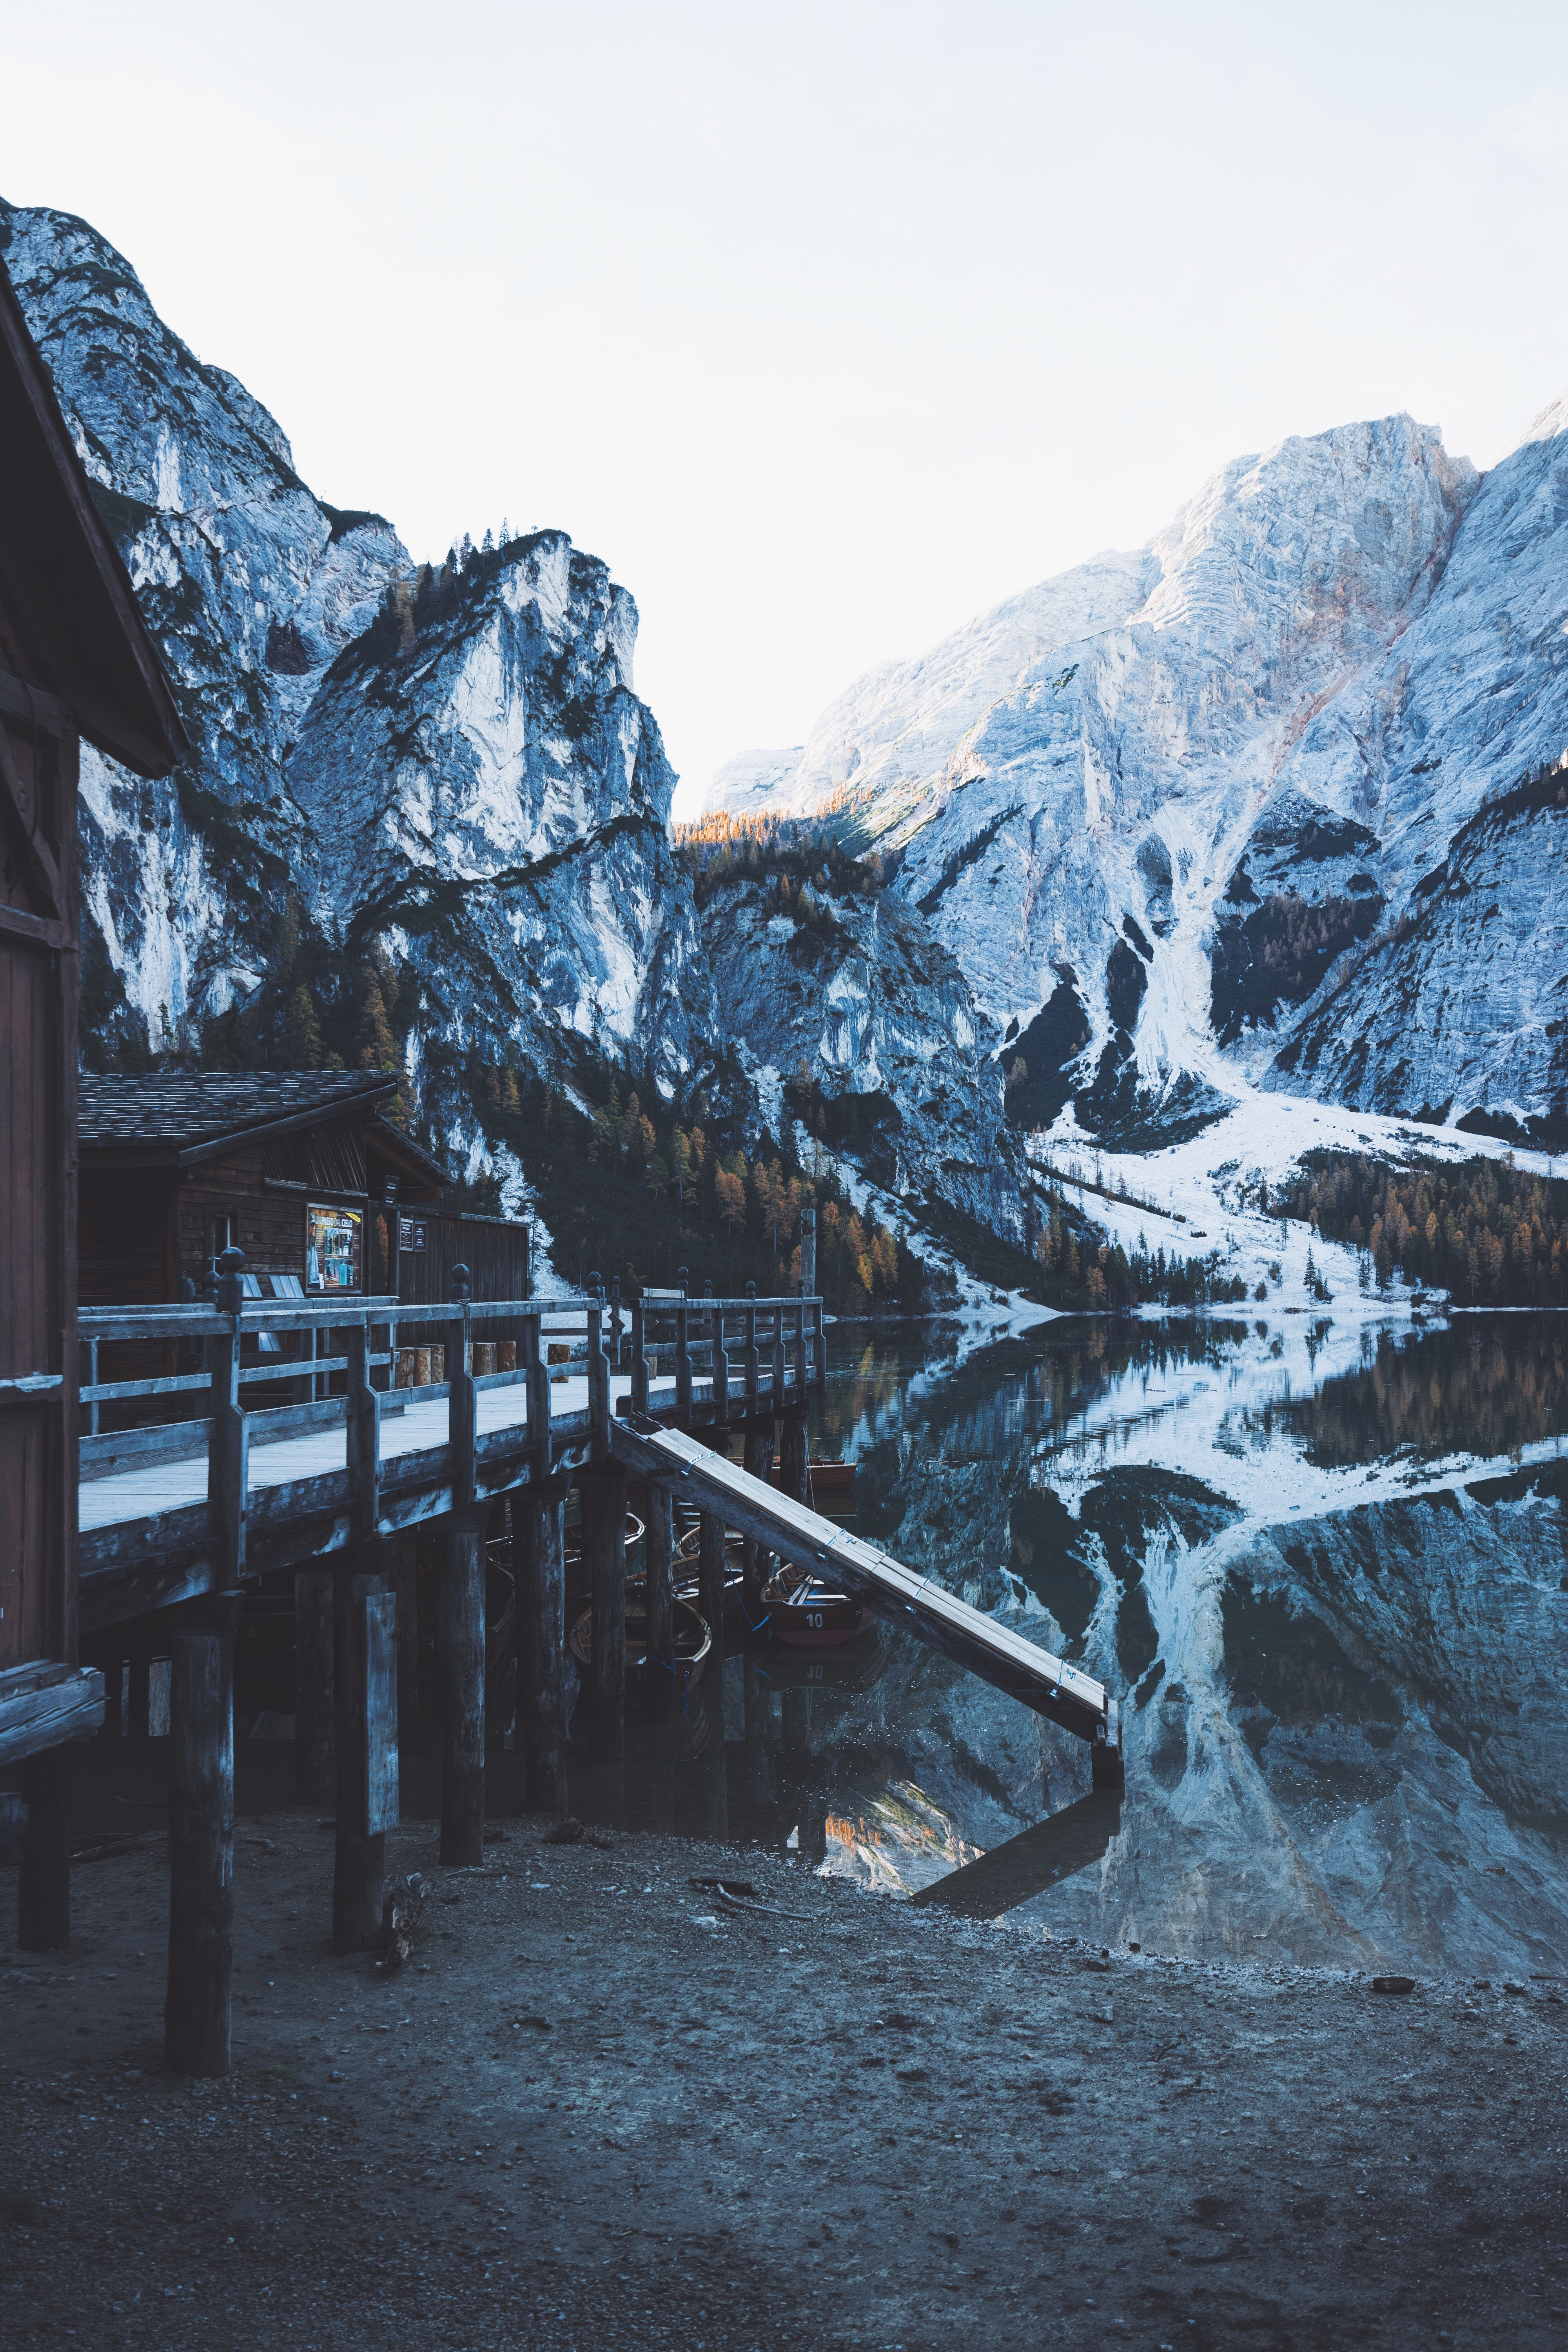 brown wooden bridge near river and snow-capped mountains at daytime